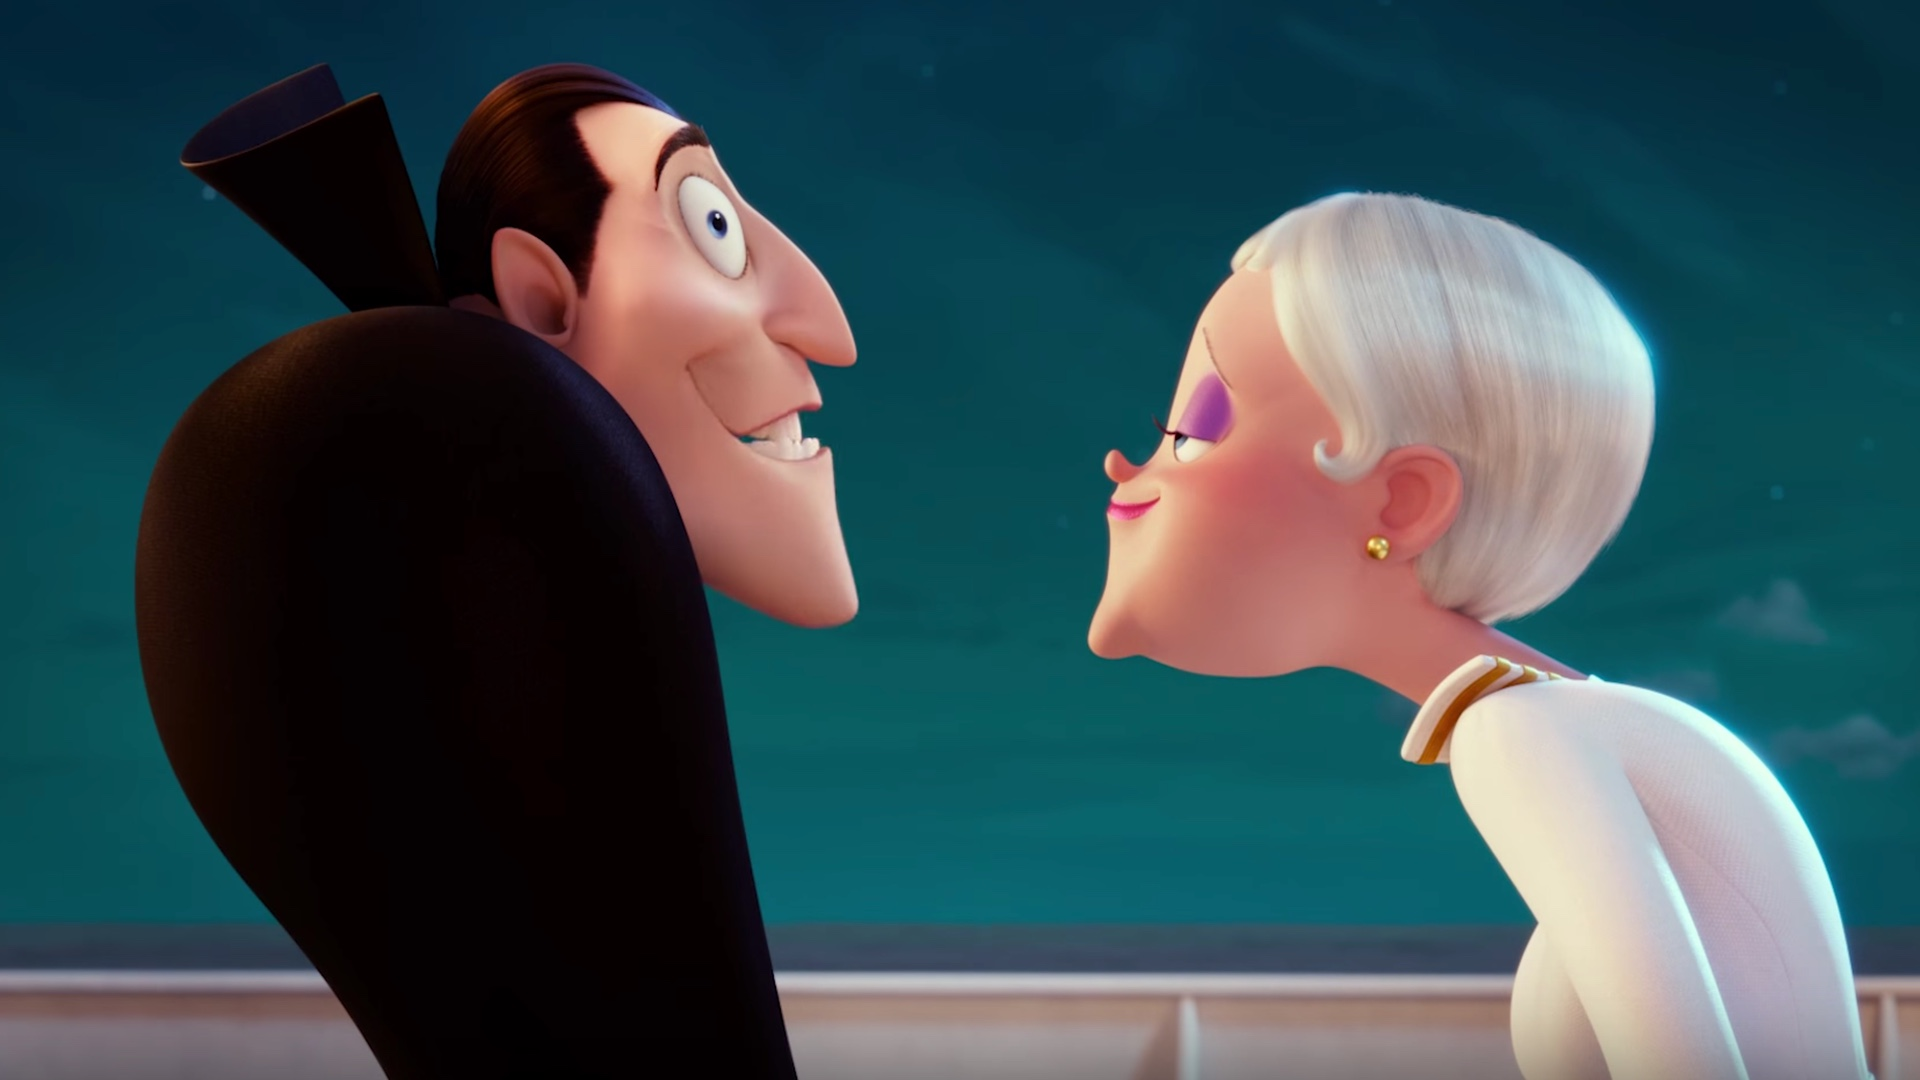 Ive Actually Enjoyed The First Two Films In Hotel Transylvania Franchise And This Third Movie Summer Vacation Looks Like It Will Be